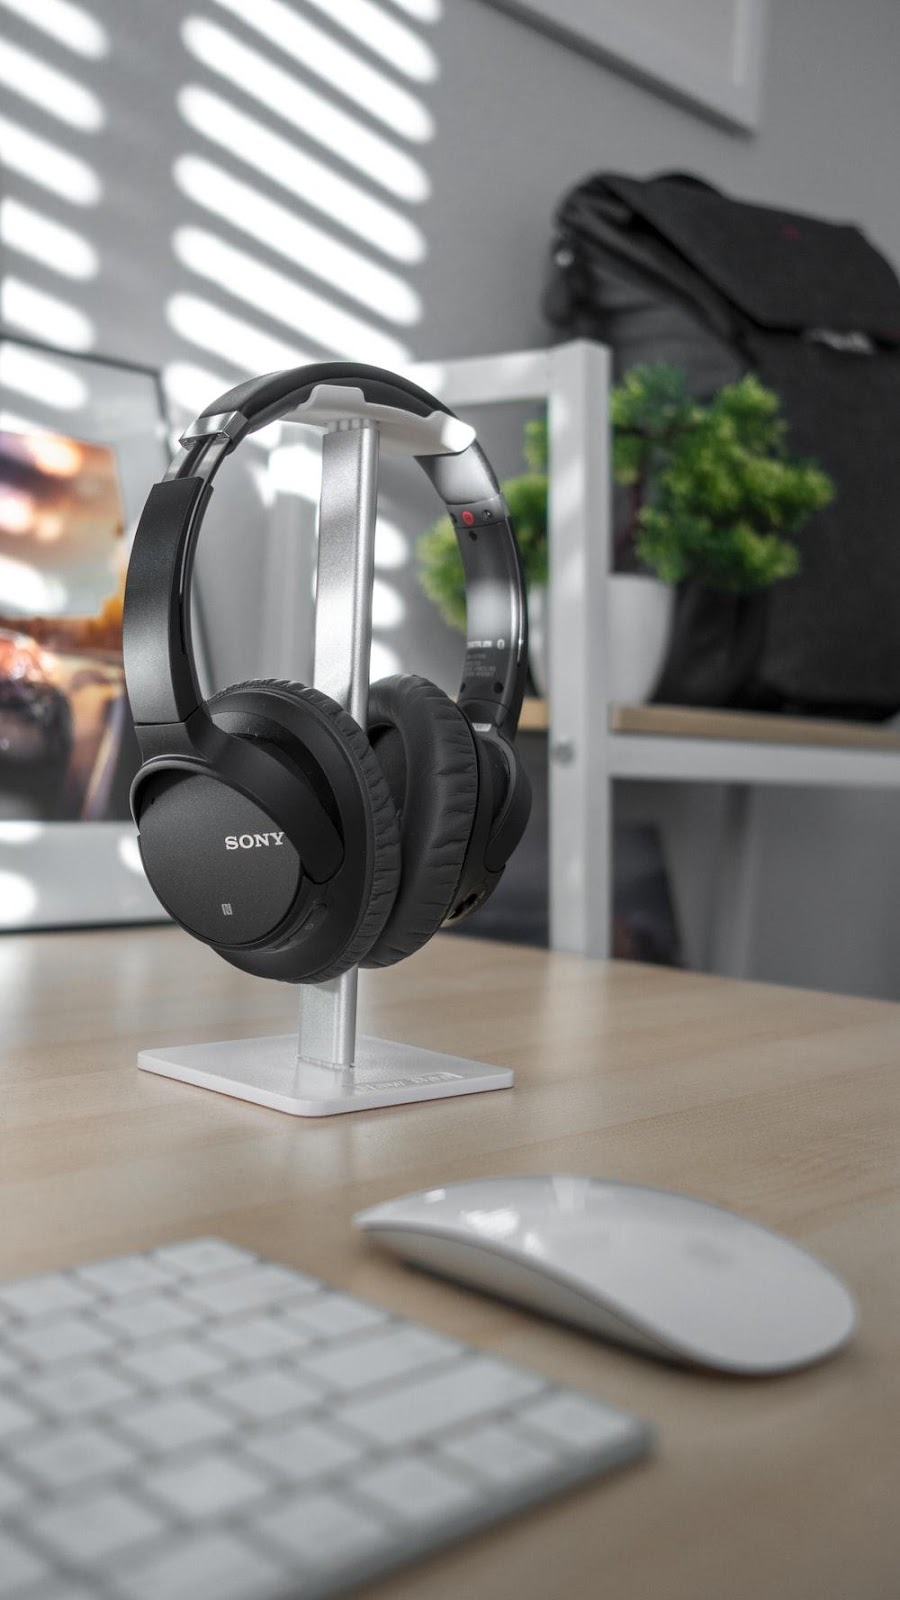 black Sony headphones hung on stand near Apple Magic Keyboard and Mouse